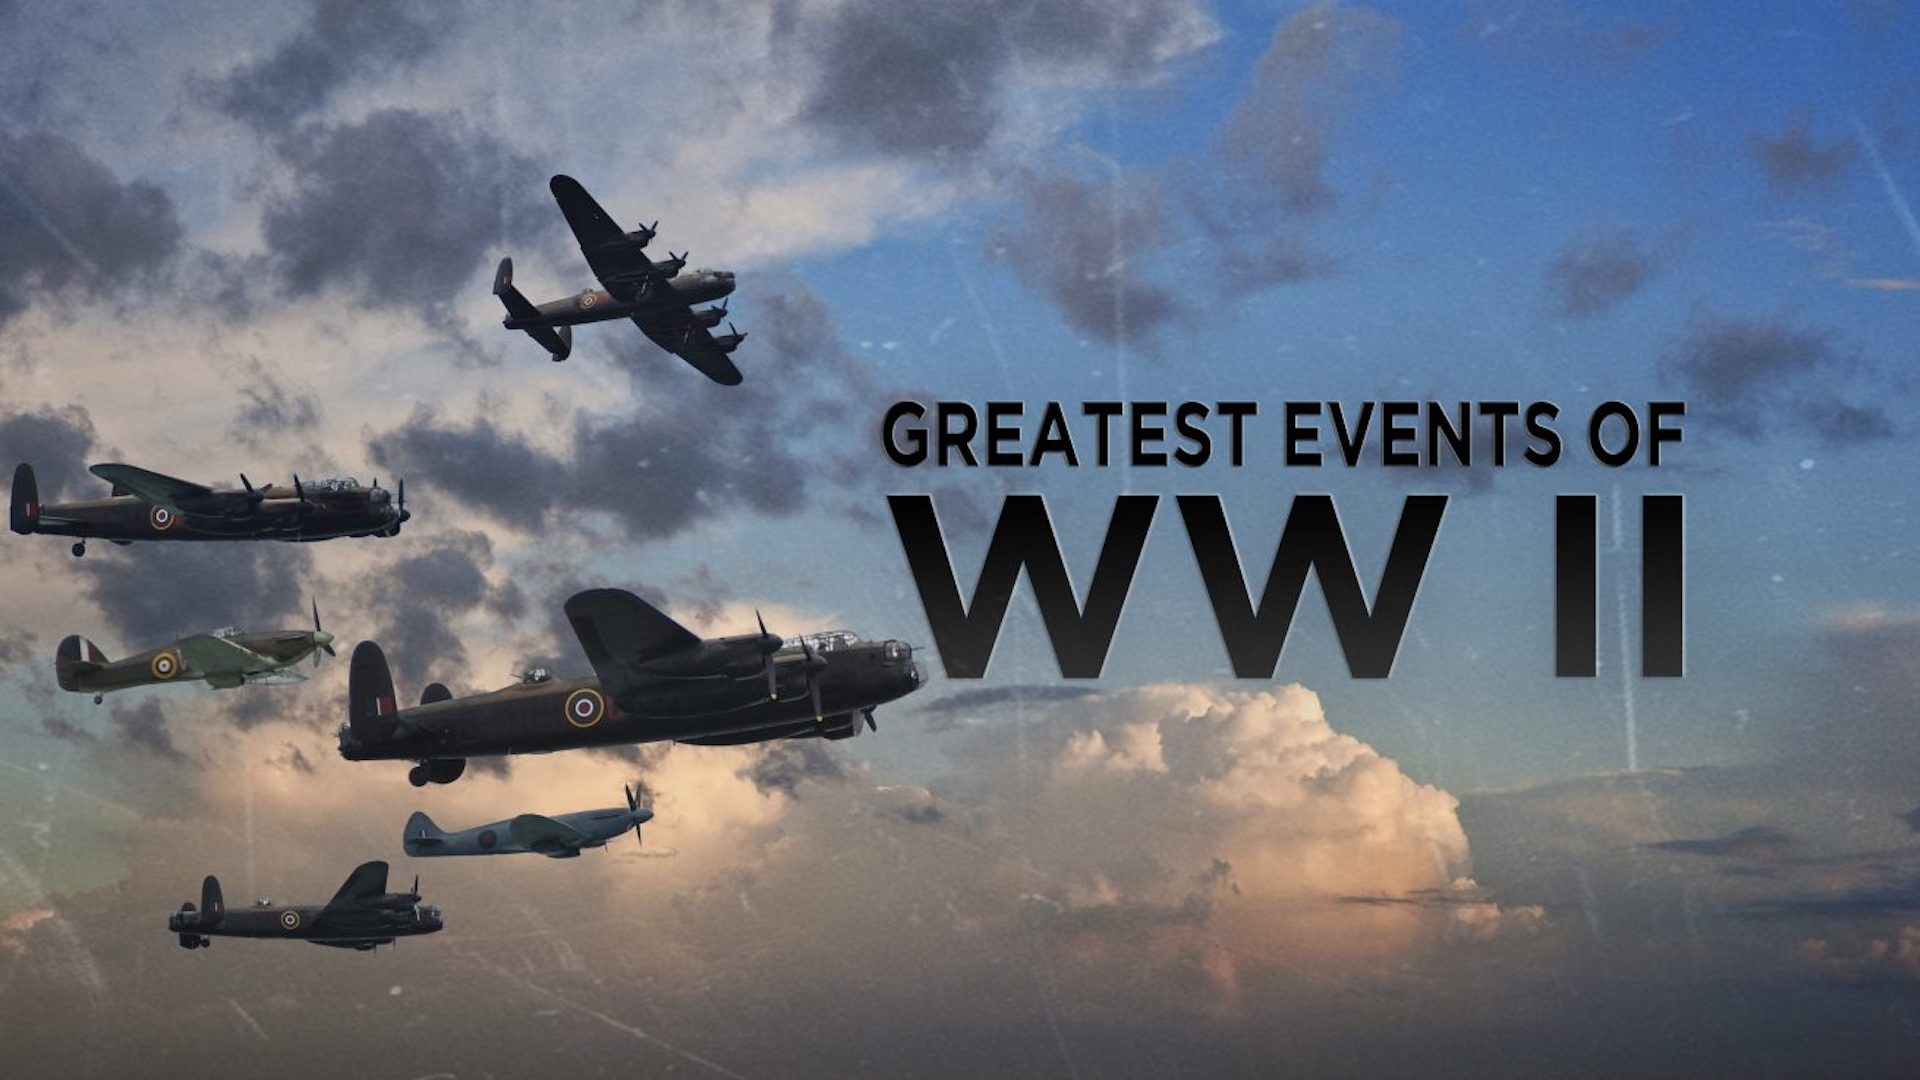 greatest events of world war ii in hd colour s01e10 720p web x264-stout